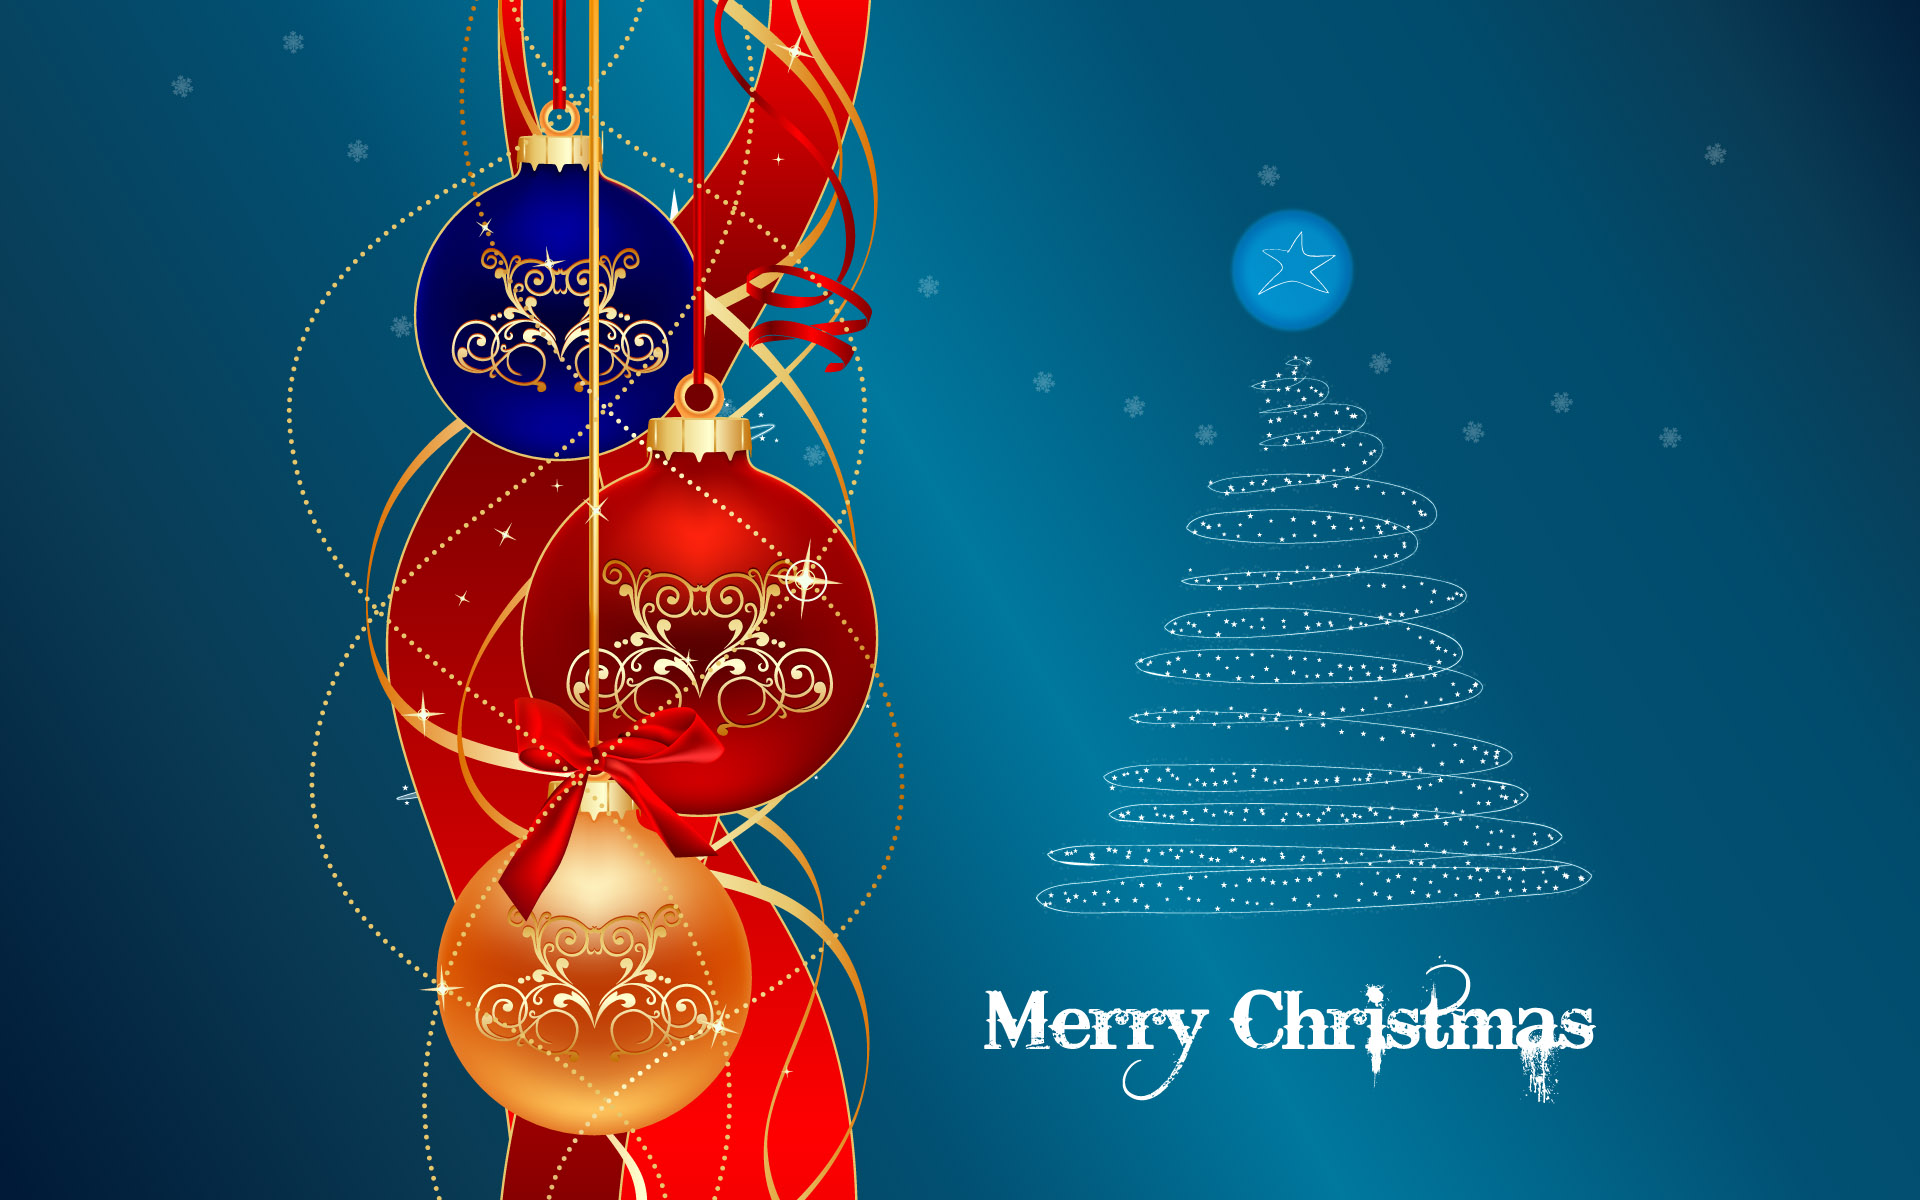 mas tree merry christmas wallpaper with decorated christmas tree in 1920x1200